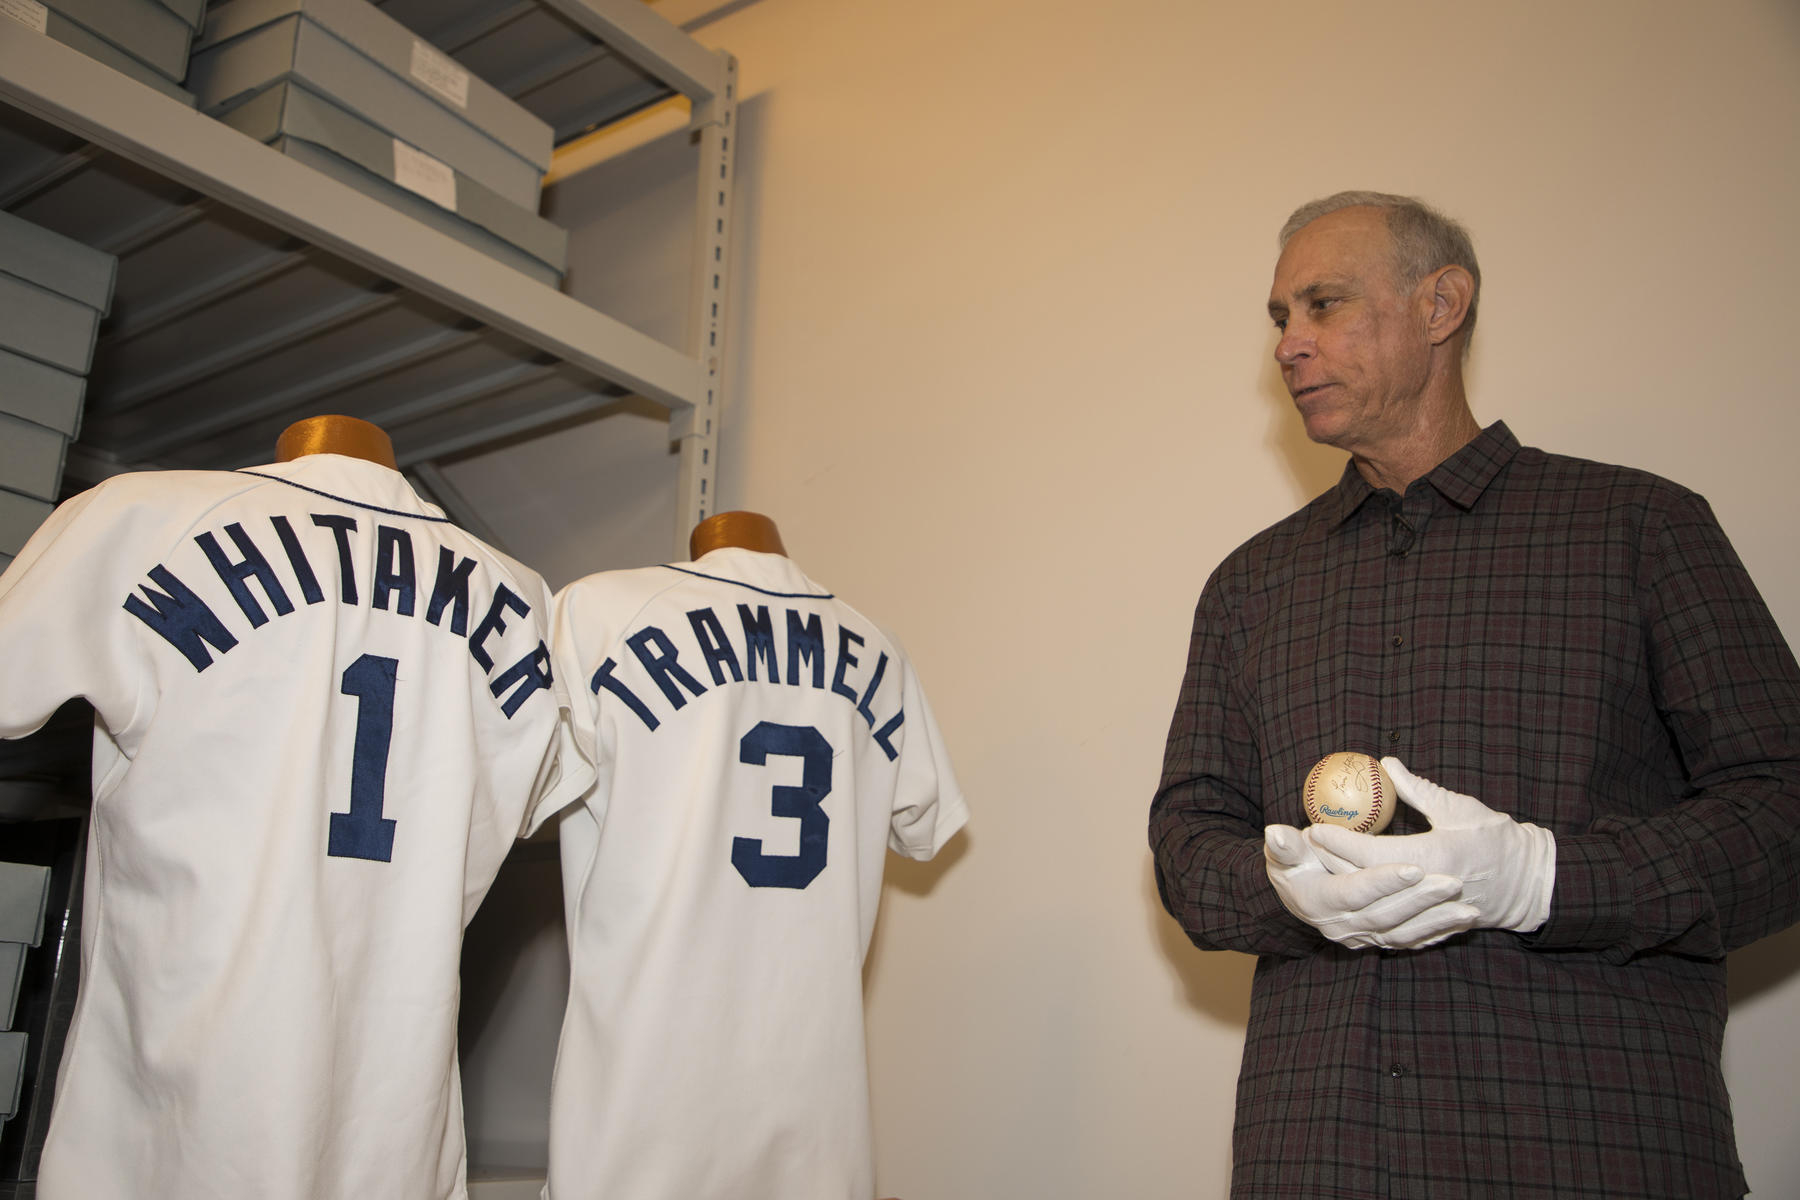 During his Orientation Visit to the Hall of Fame on March 15, Class of 2018 member Alan Trammell holds a baseball used in 1995 when he and Lou Whitaker set an American League record for most games as teammates. In the background are jerseys worn by Whitaker (in 1984) and Trammell (in 1983) which are a part of the Museum's collection. (Milo Stewart Jr./National Baseball Hall of Fame and Museum)